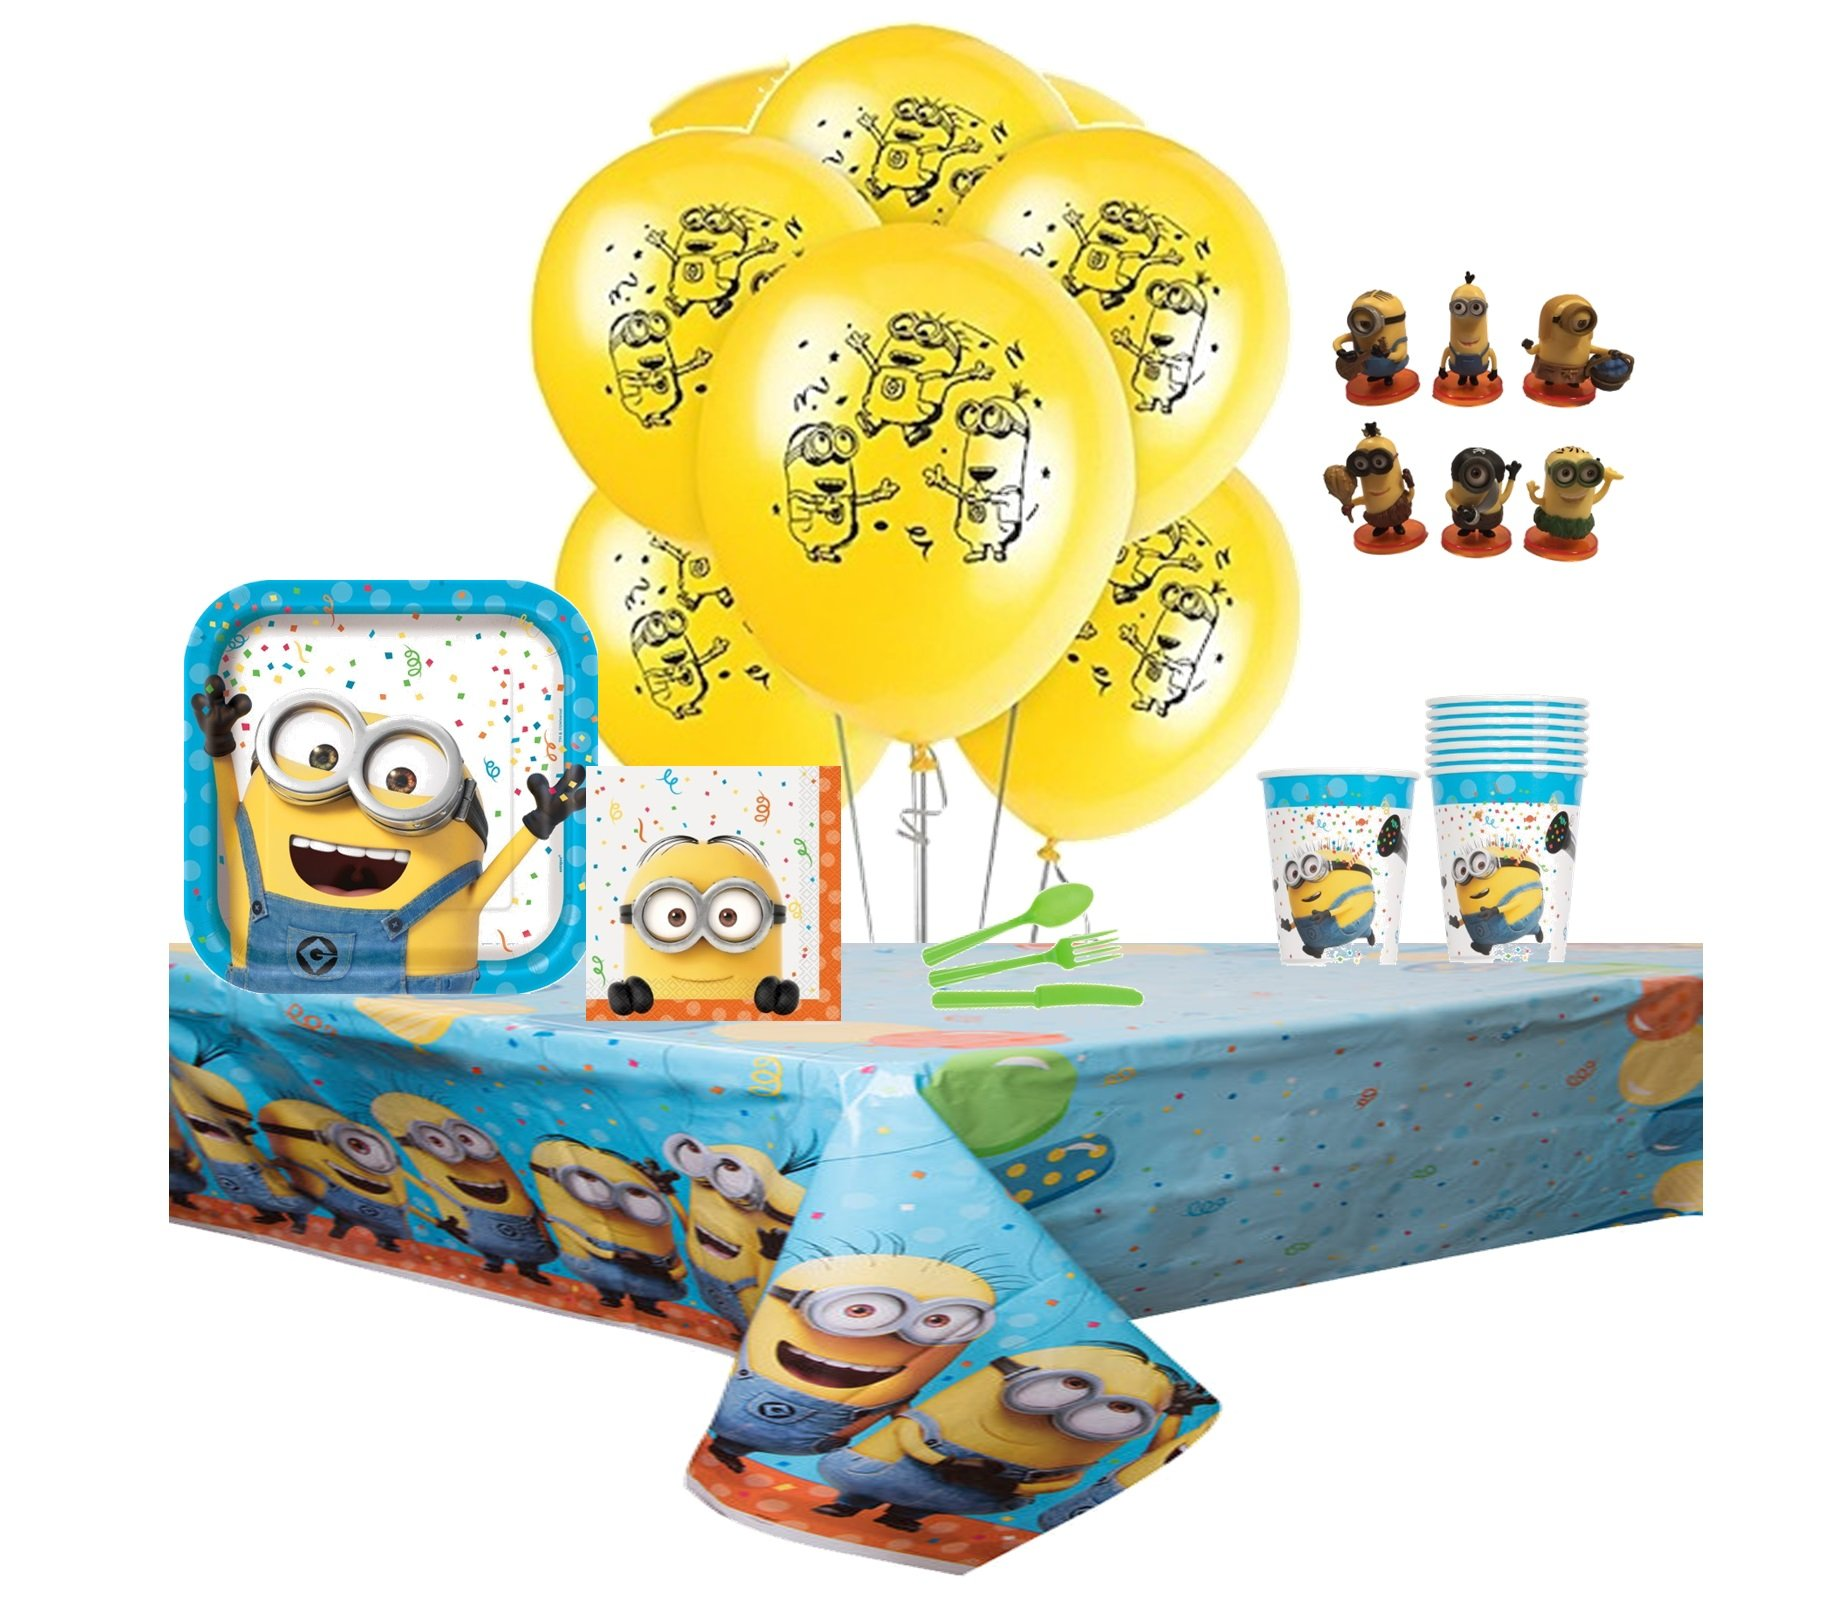 Despicable Me 3 Complete Birthday Party Pack for 8 Includes 9'' Dinner Plates, Lunch Napkins, Cups, Balloons, Tablecover & Cutlery with Bonus 1pc Minion Action Mini Figure